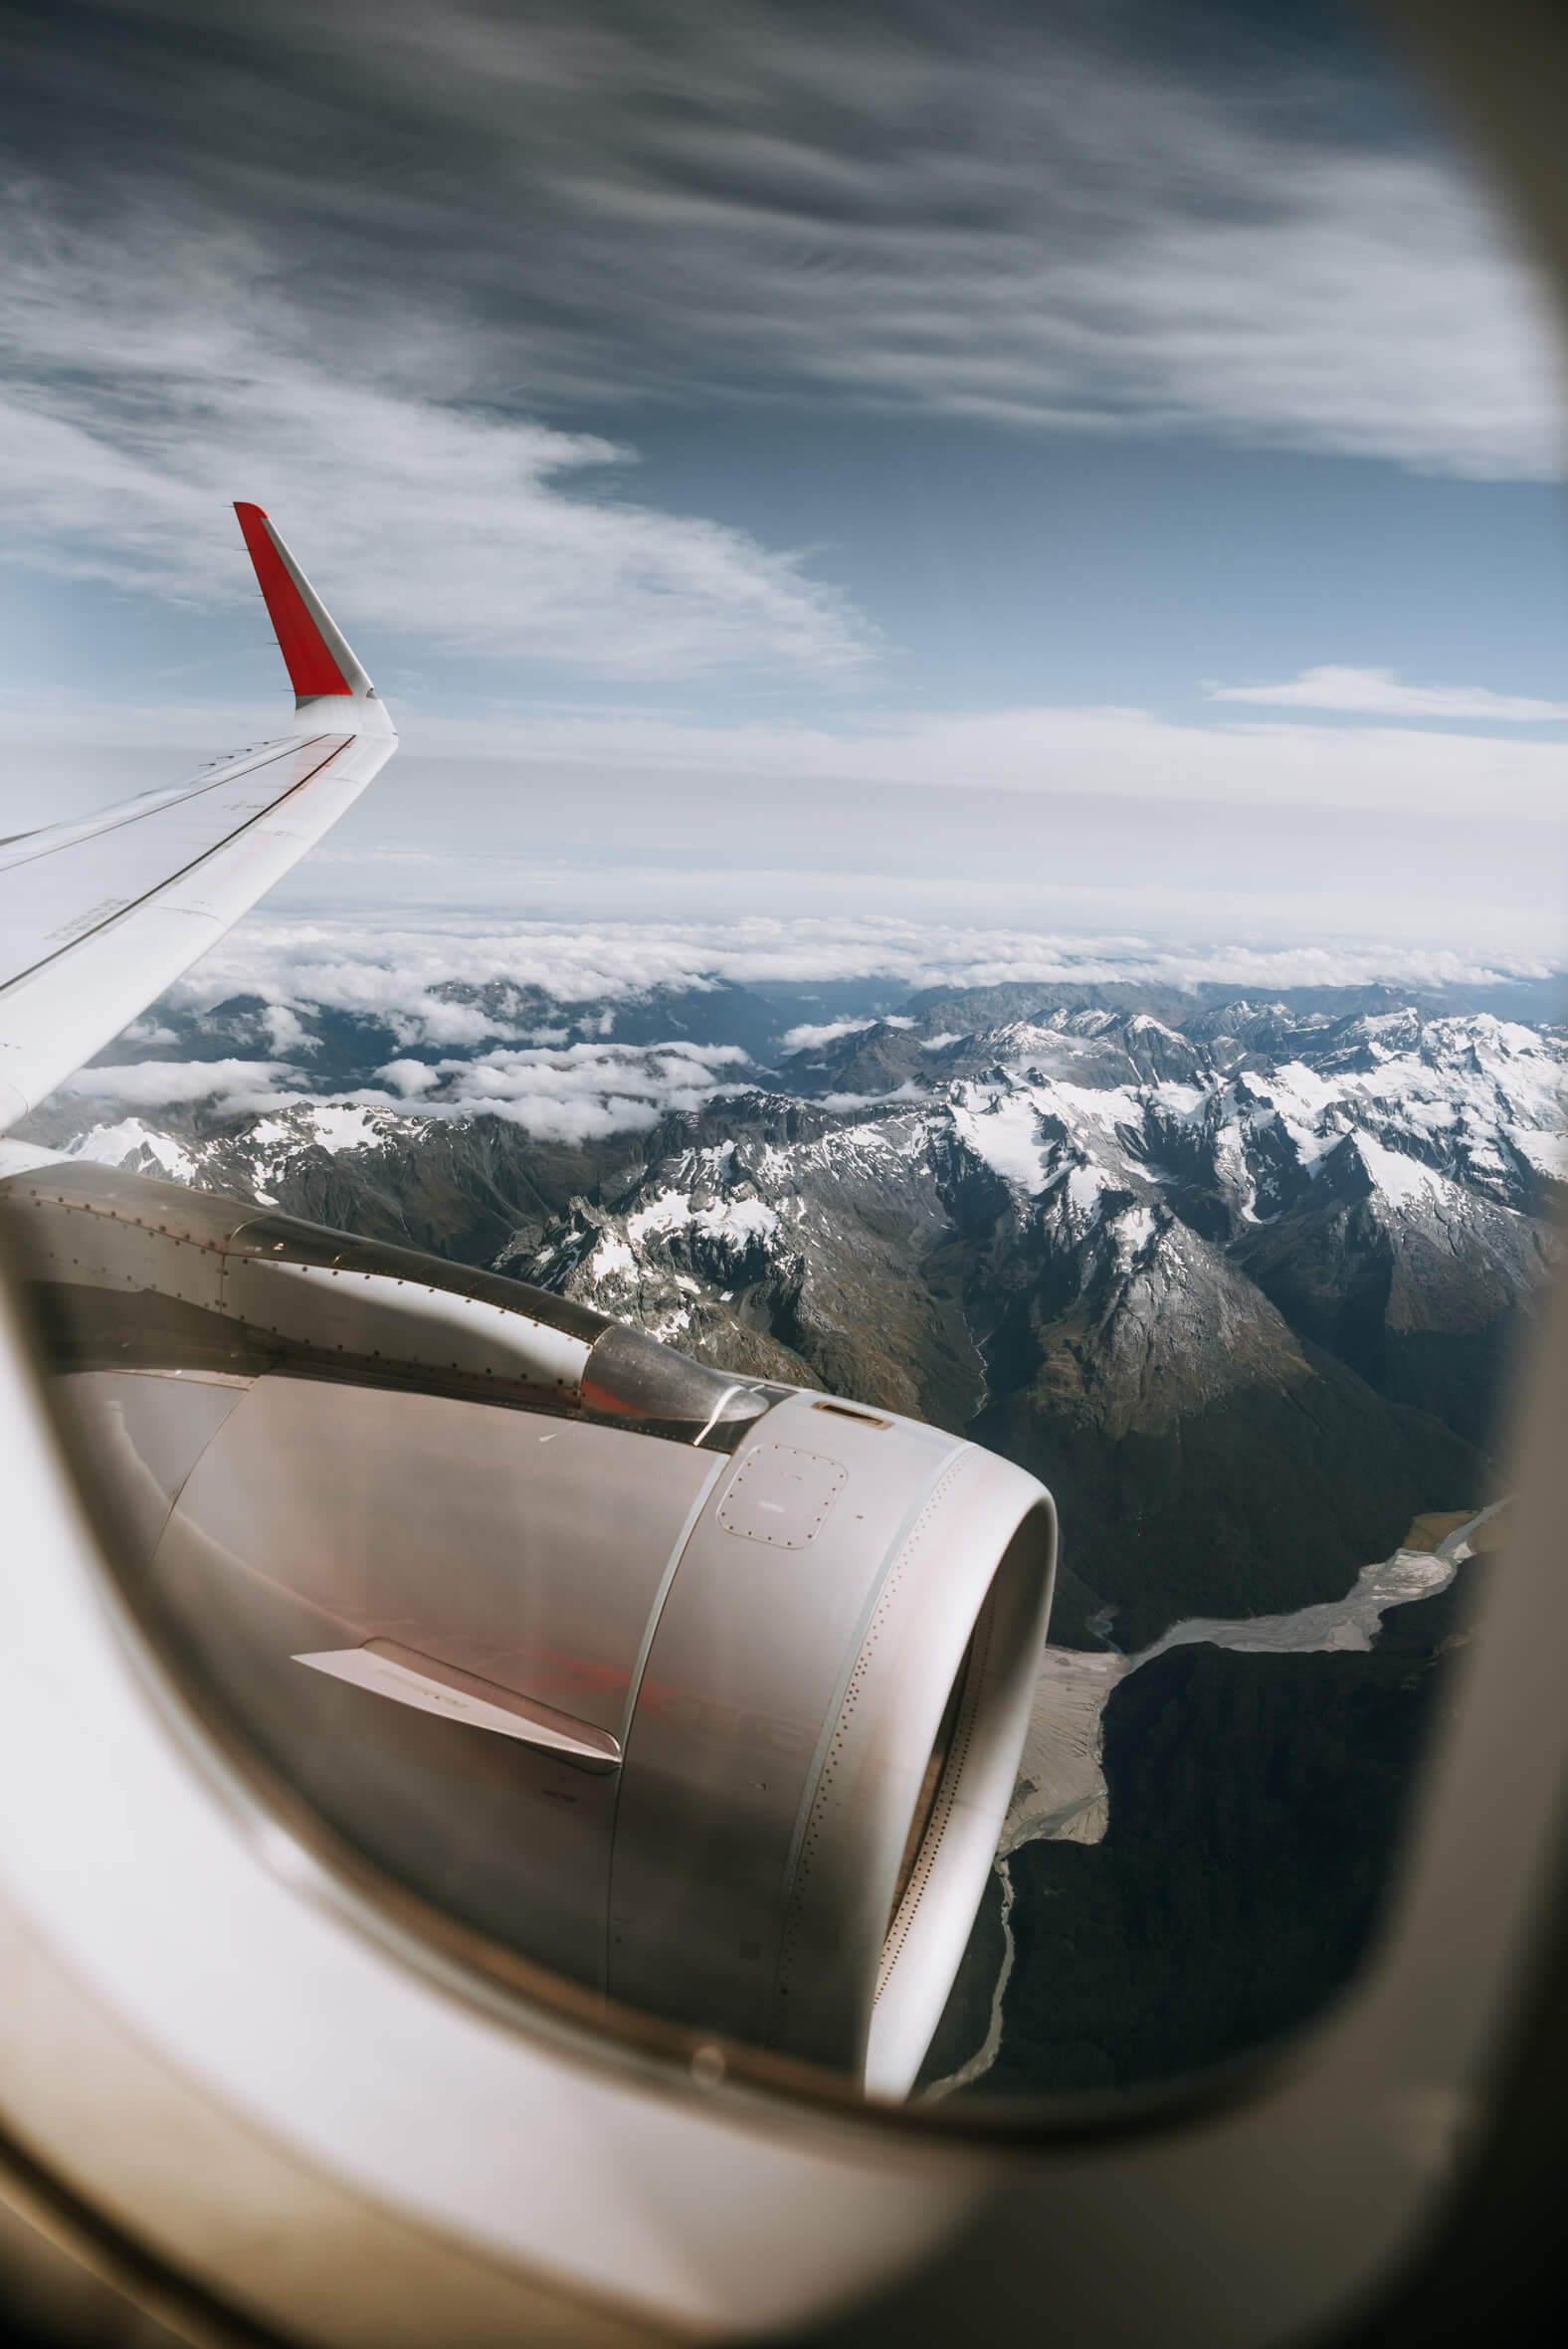 Melbourne photographer captured these stunning views while flying over Queenstown, New Zealand